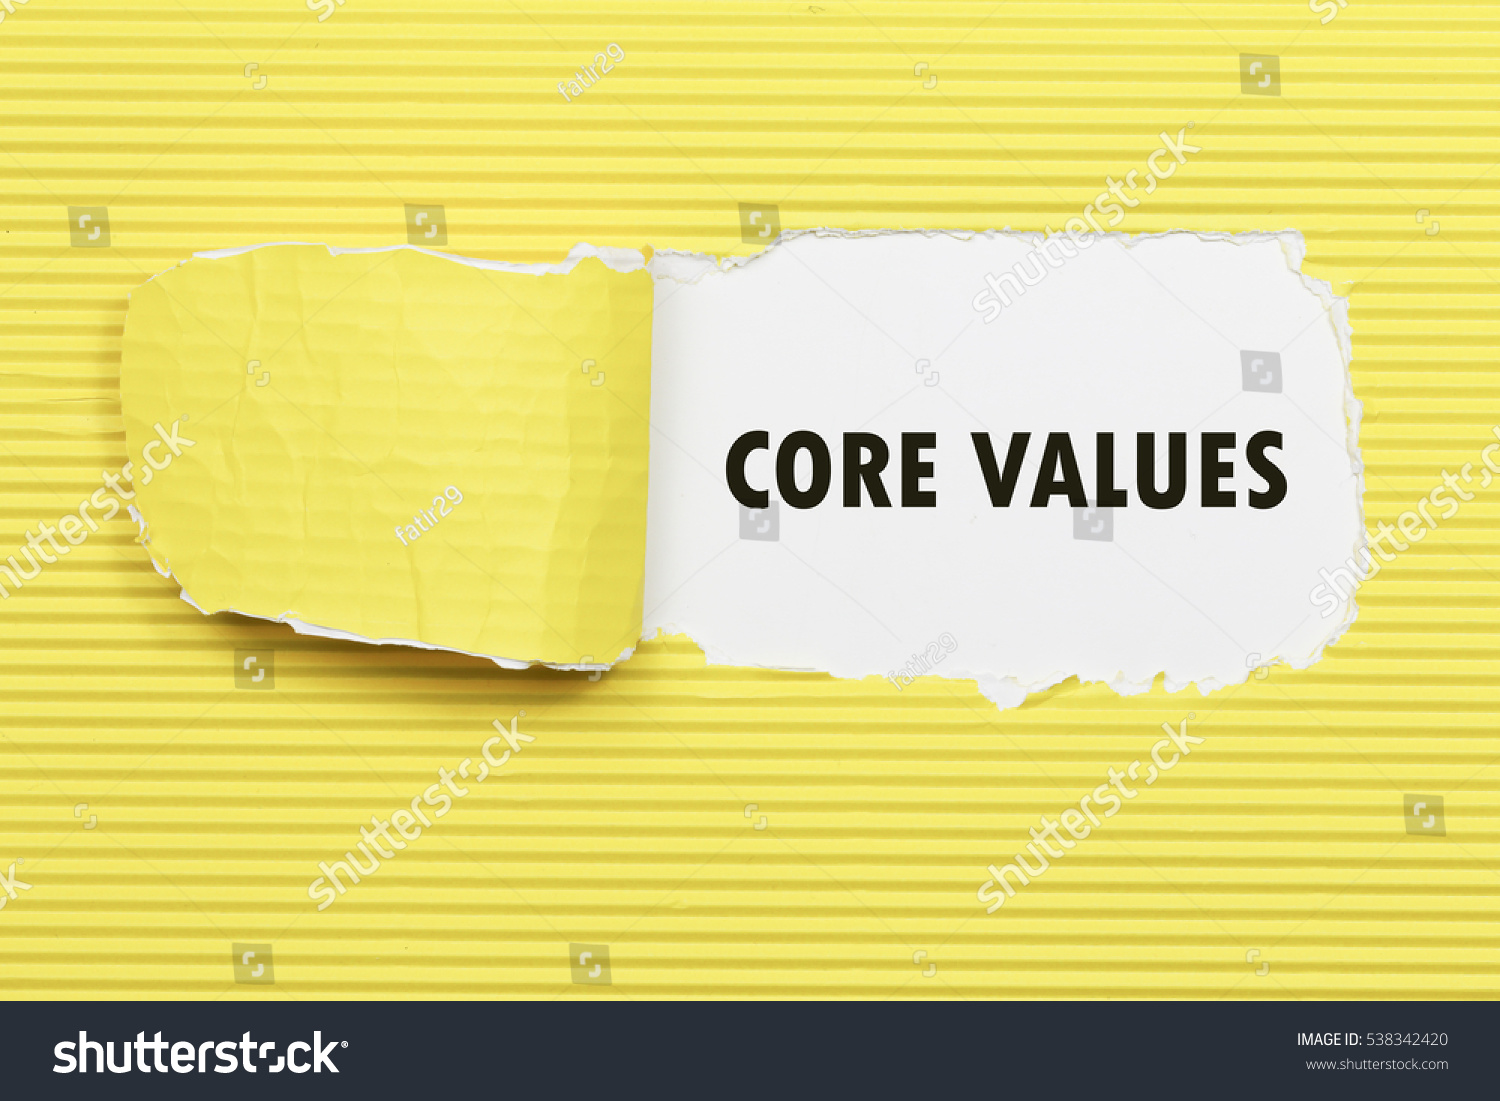 core values research papers Coens too, paul greengrass, snyder, whedon corporal punishment essay lyrics research papers on hotel rwanda air force core values essays space exploration essay disadvantages of smoking help with science homework justice thesis statement in dissertation can someone do my homework for me i find the black balloon essay peter picht dissertation .